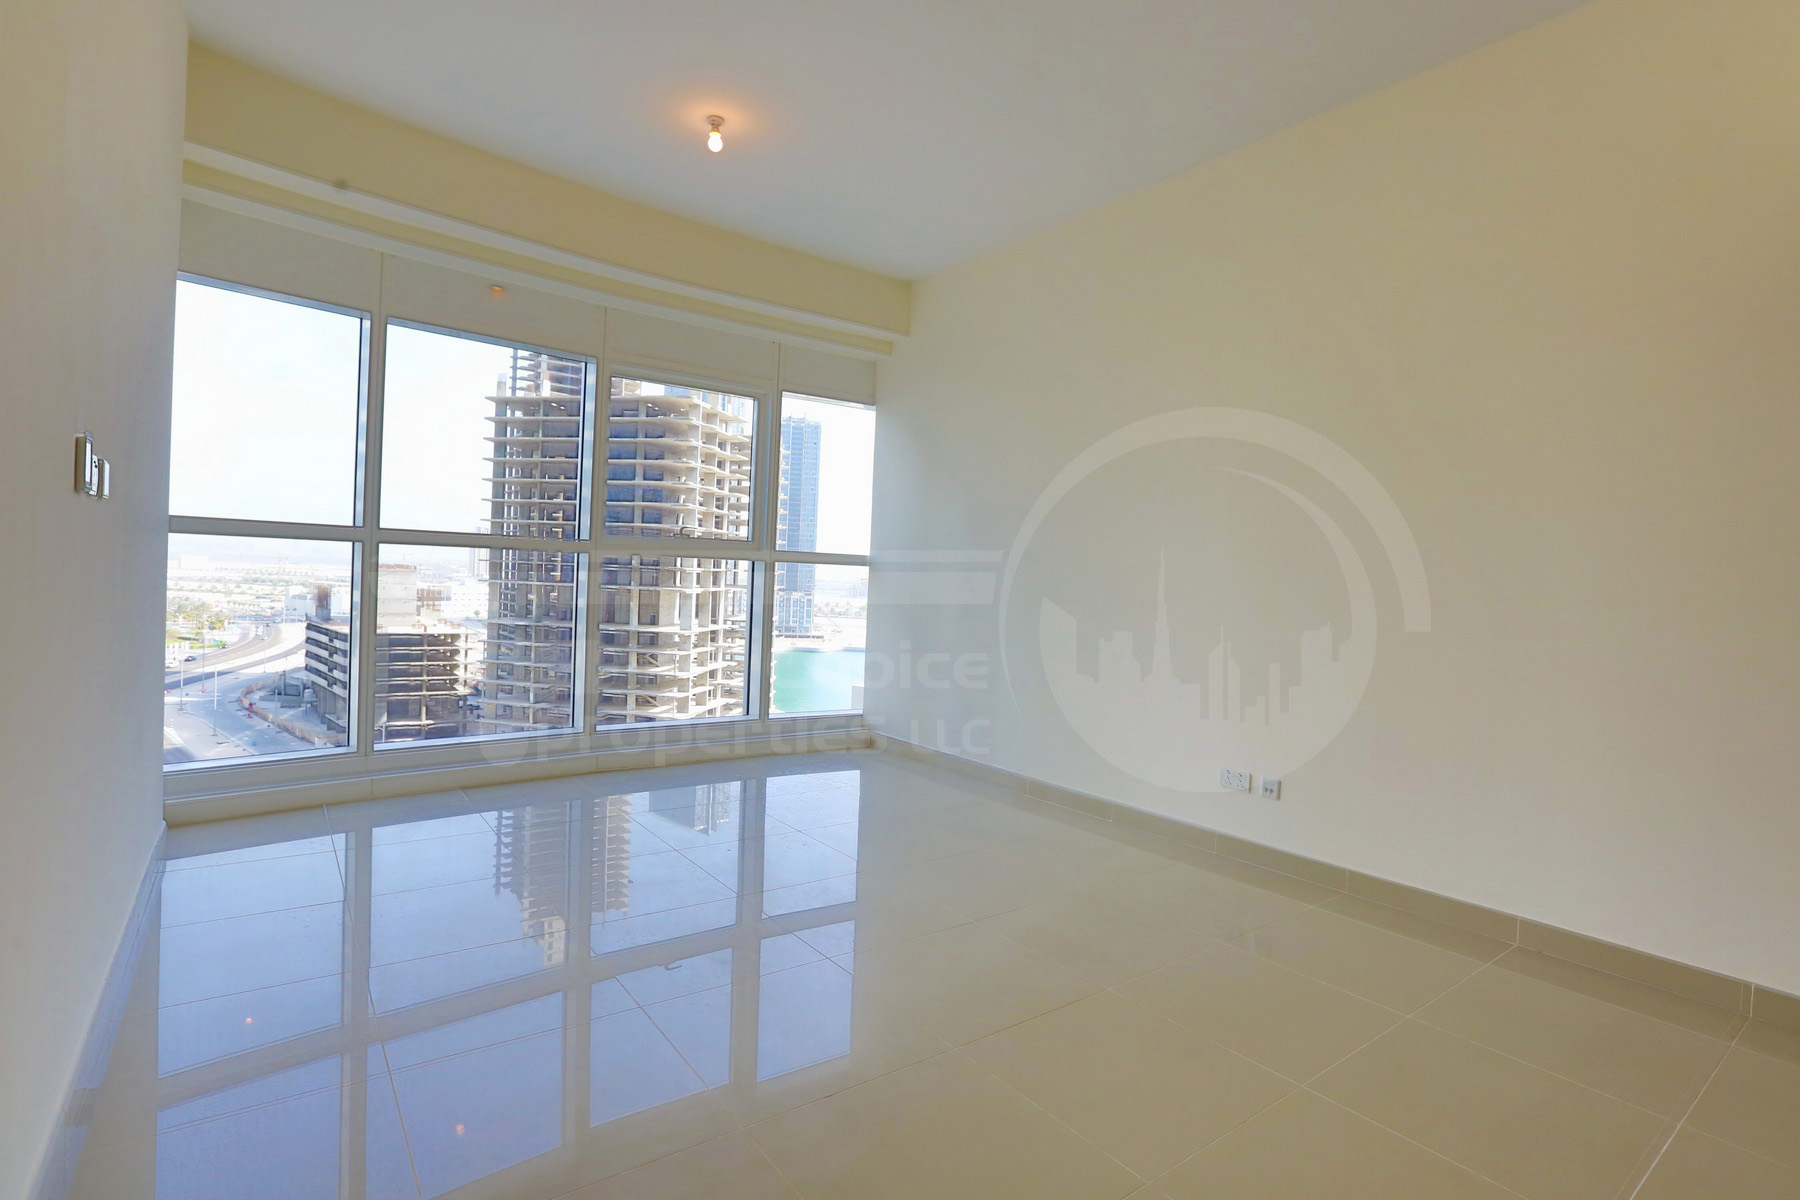 Studio Apartment - Abu Dhabi - UAE - Al Reem Island - City of Lights - C10 Building (7).JPG